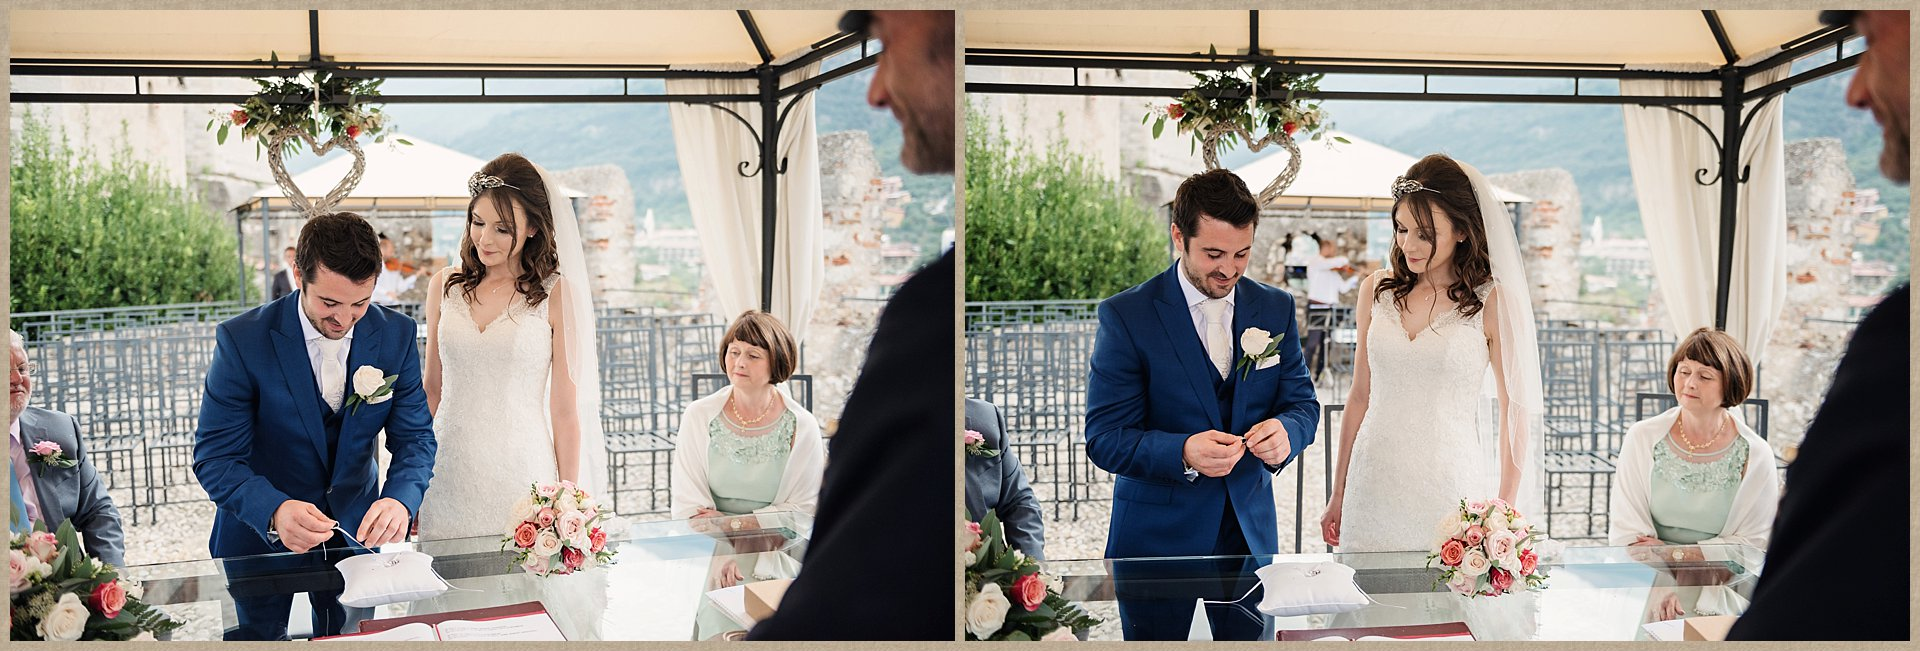 exchanging of the rings - Malcesine Castle Wedding